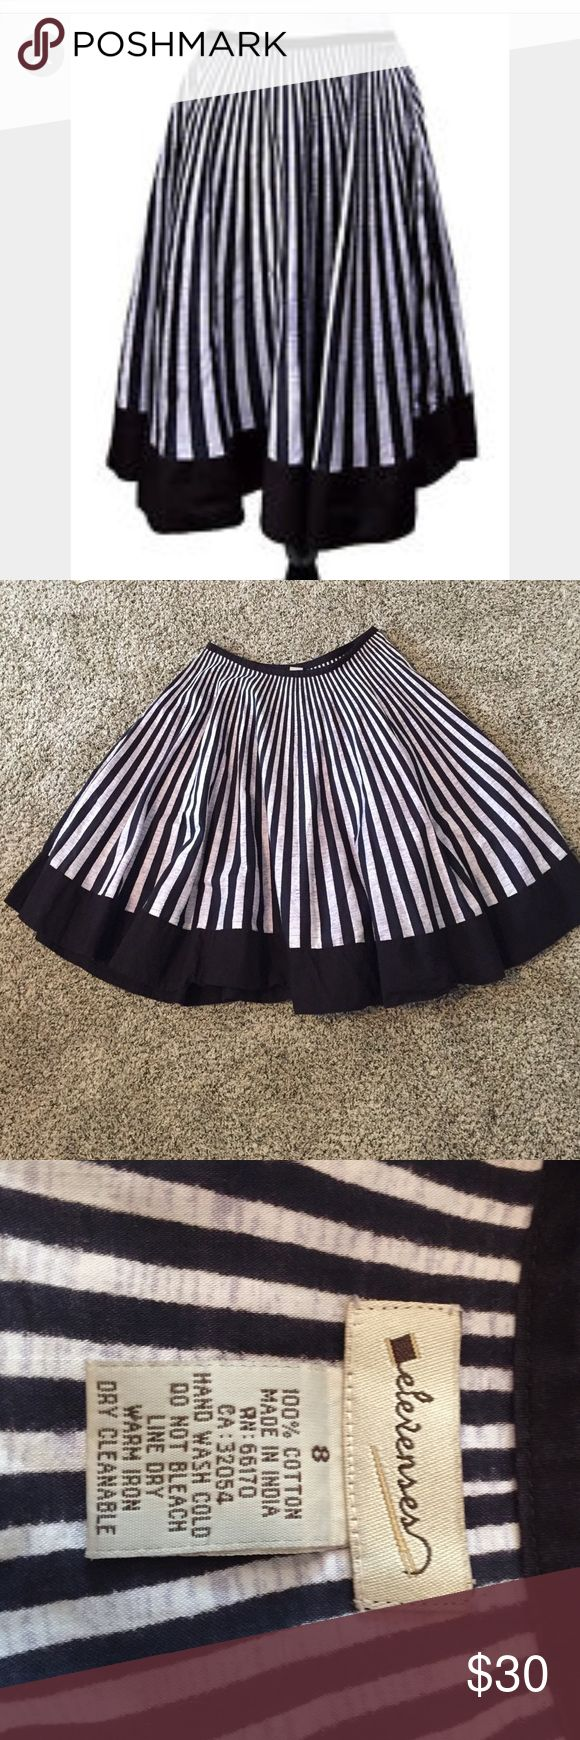 """Elevenses striped circle skirt Black and heathered gray striped full circle skirt with black border. Hidden side zipper with hook and eye. Length from waistband to hem is 25"""". Excellent condition. Anthropologie Skirts Circle & Skater"""